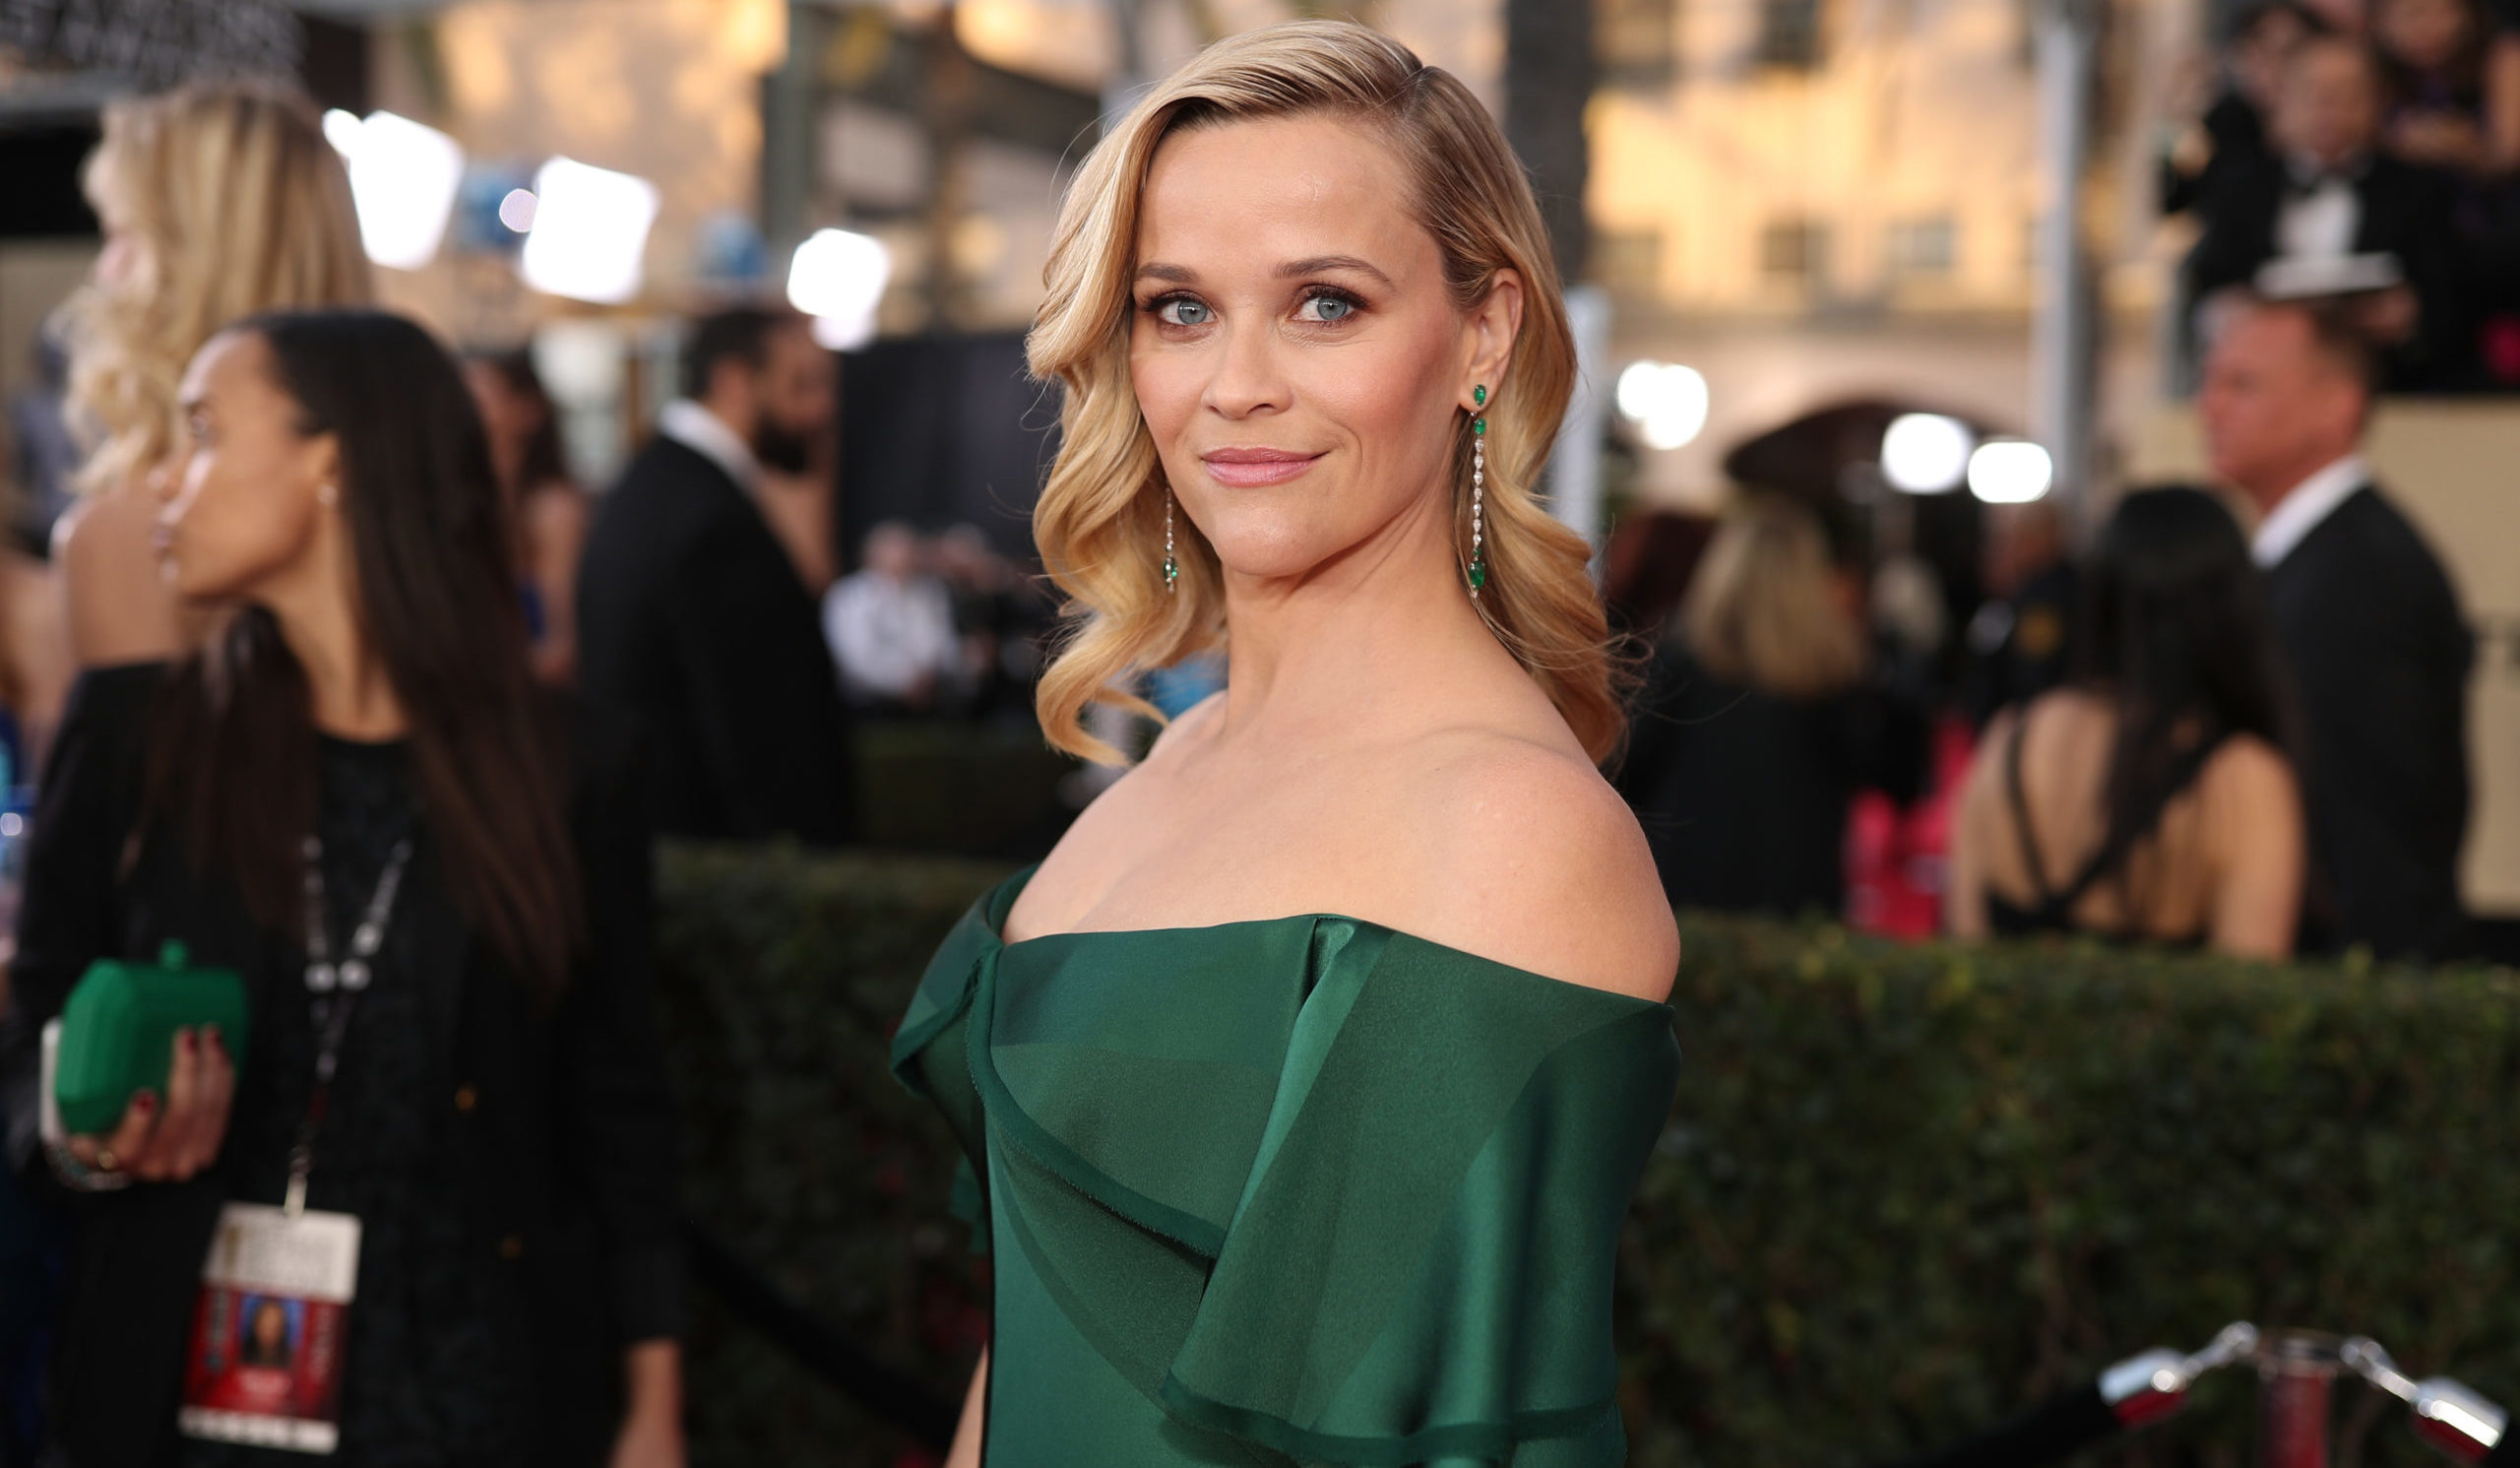 Reese Witherspoon. (Christopher Polk/Getty Images for Turner)